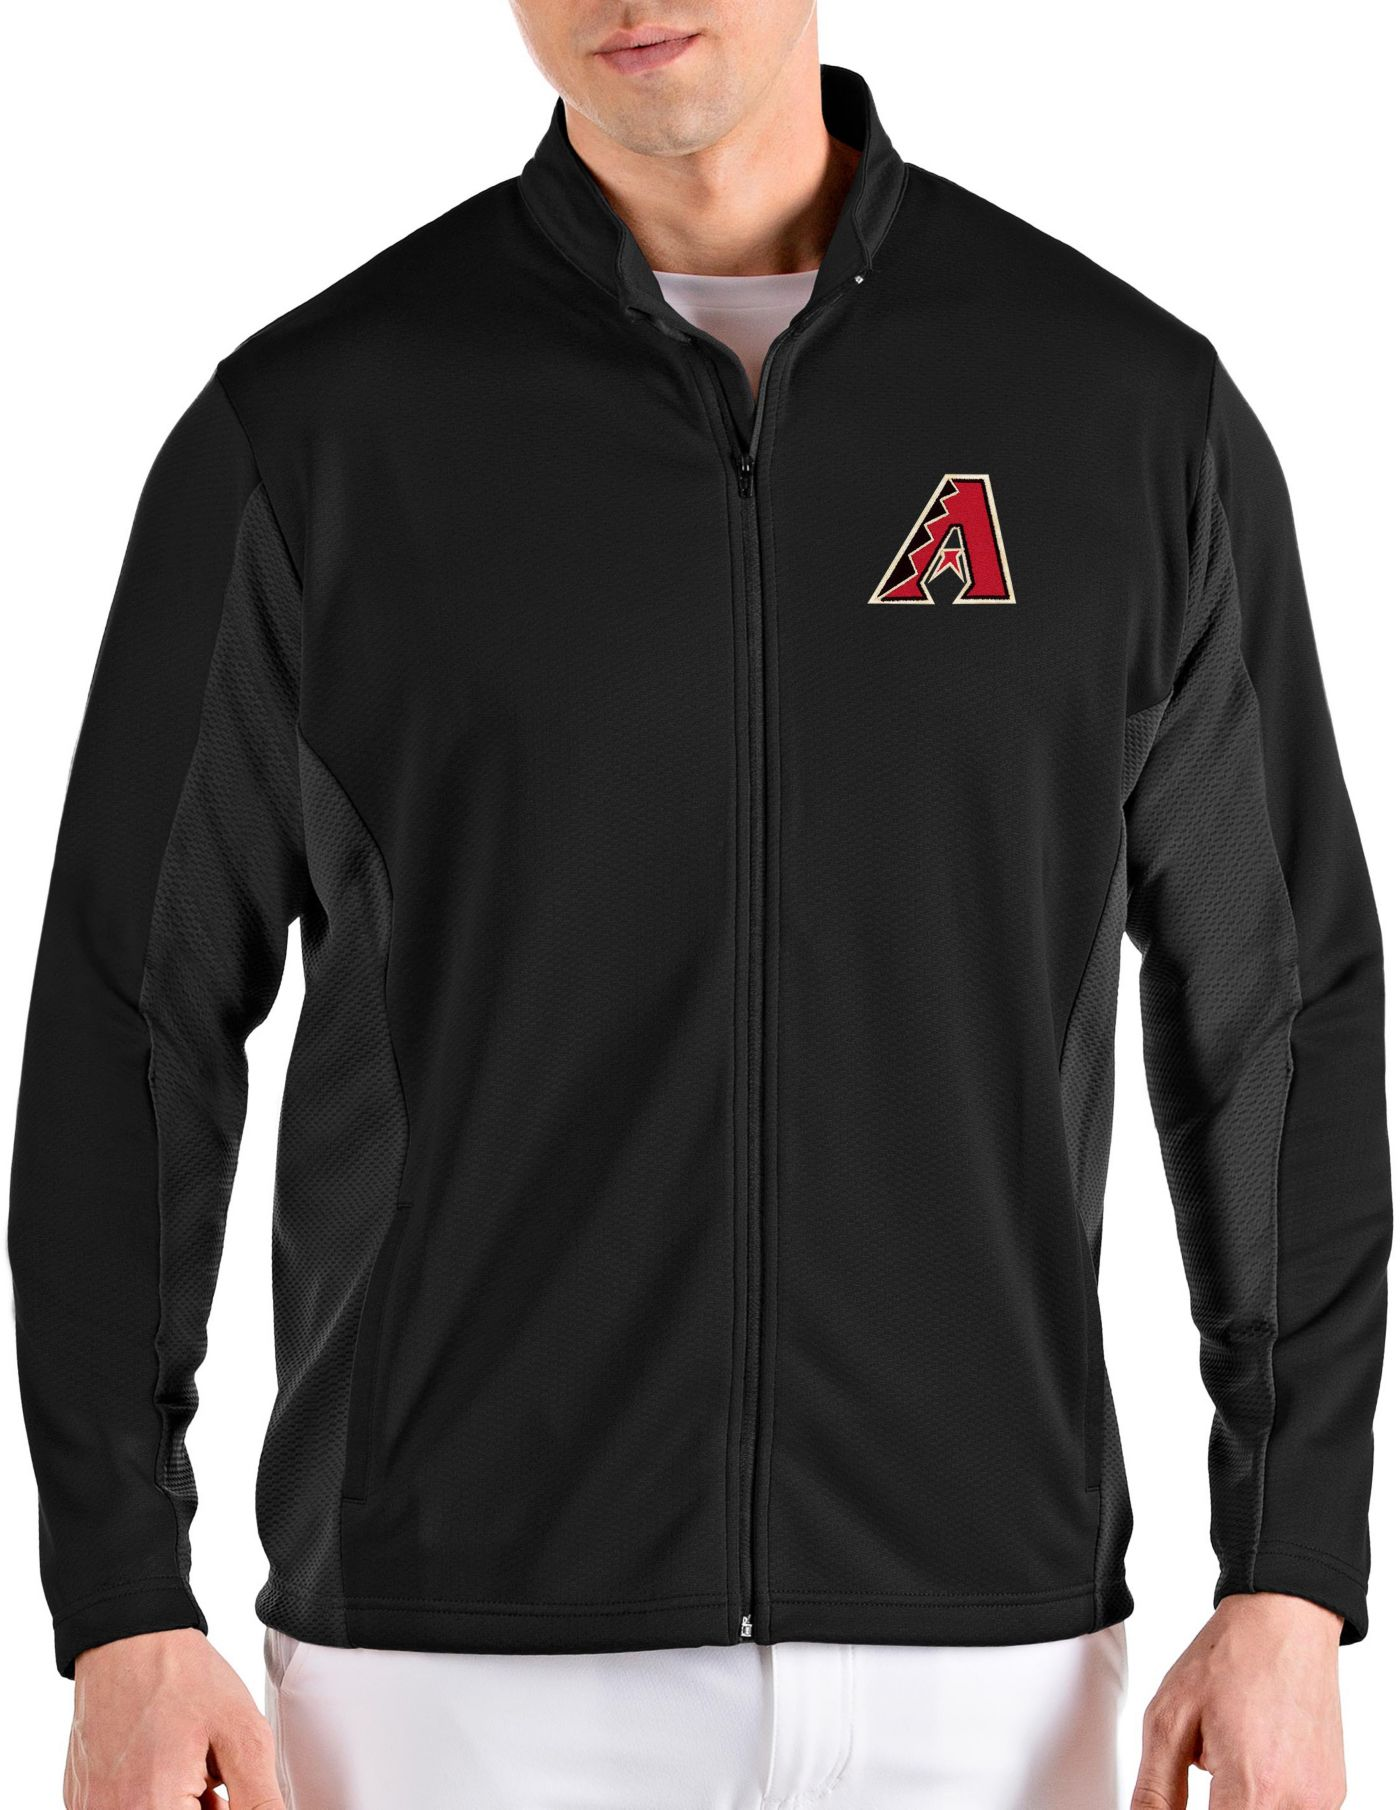 Antigua Men's Arizona Diamondbacks Black Passage Full-Zip Jacket